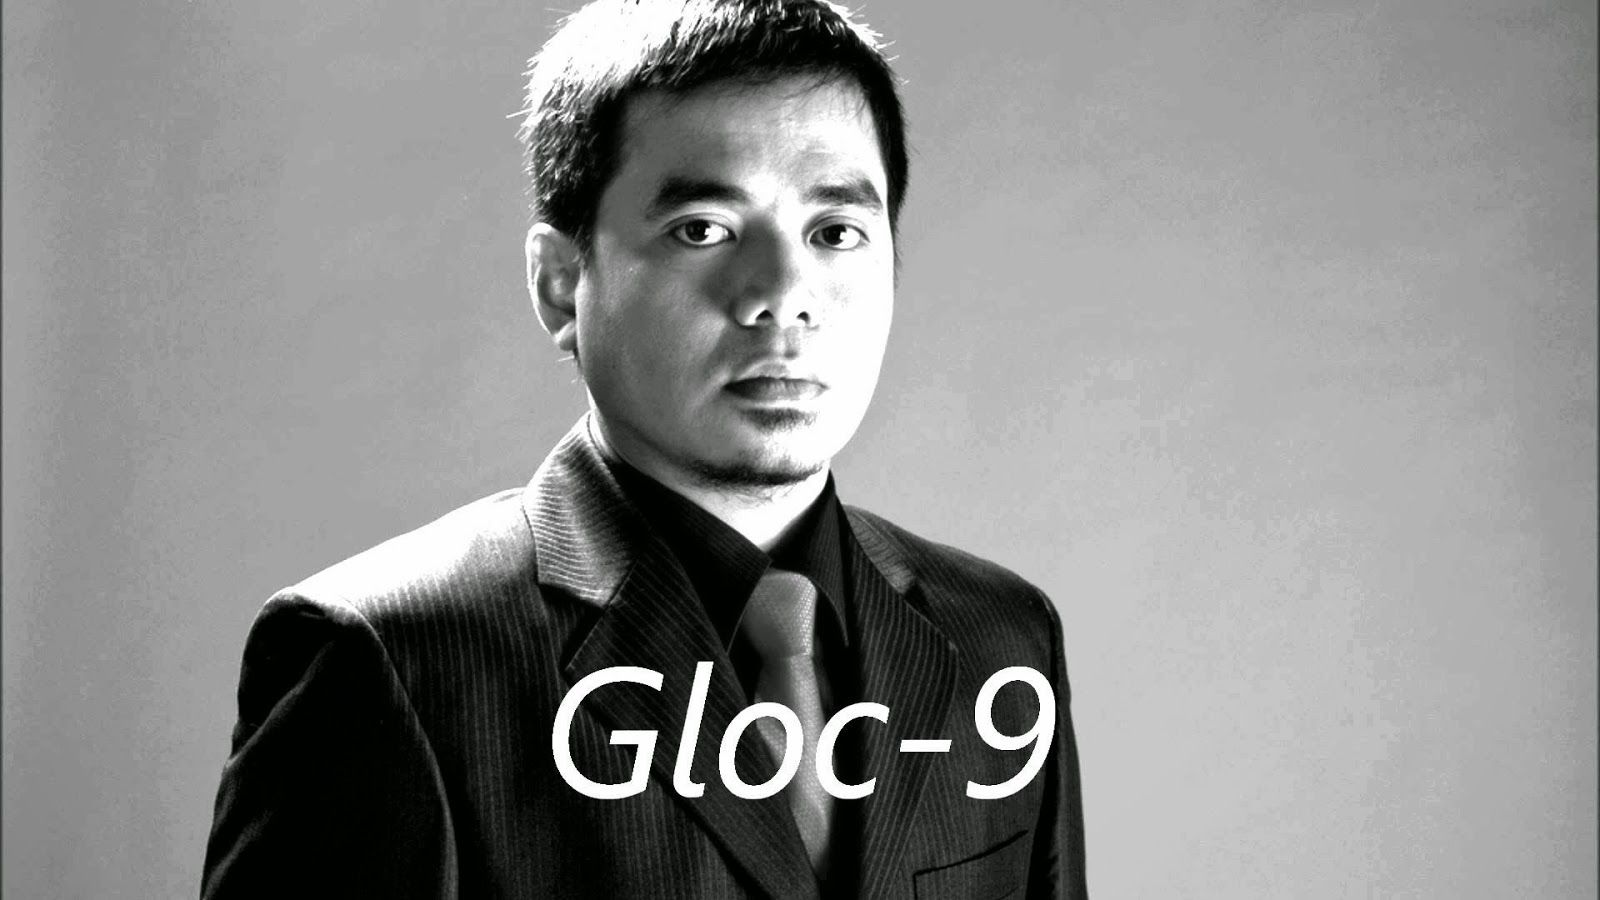 Gloc 5 Life-Documentary to release soon  Documentaries, Life, Singer